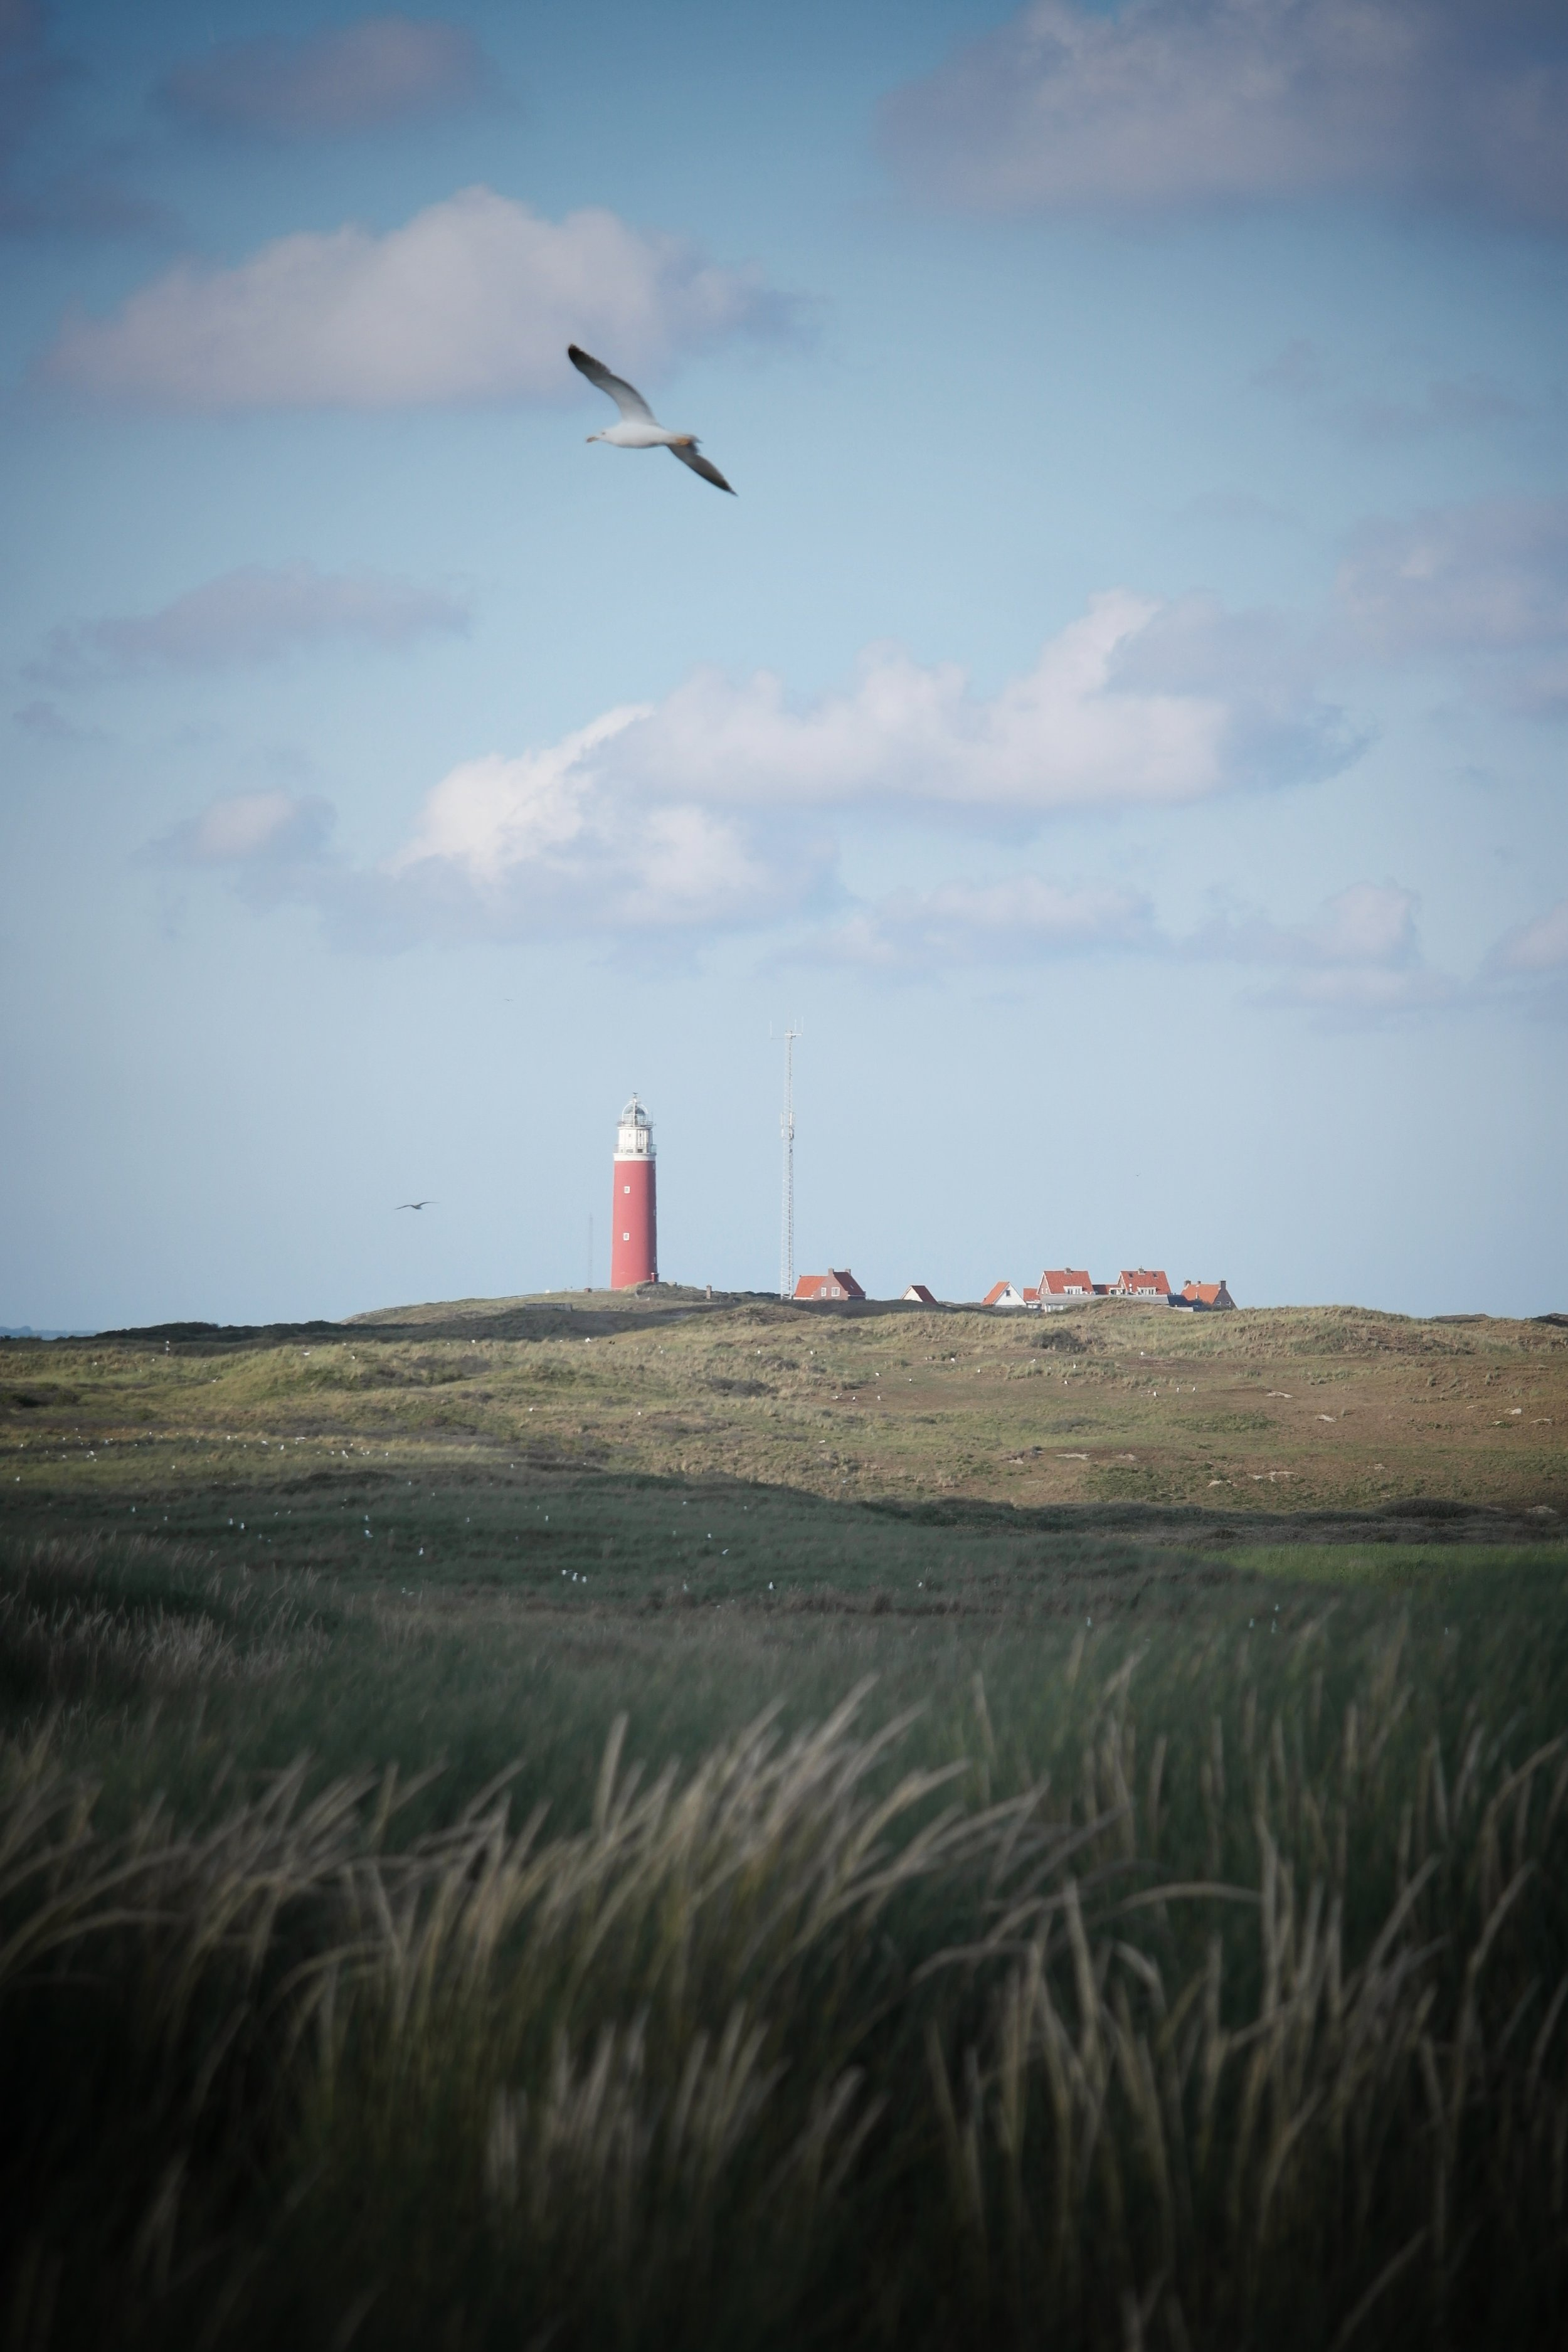 The Lighthouse at near to De Cocksdorp, signifies the end of the island, an amazing landscape feature and a brilliant place to visit.